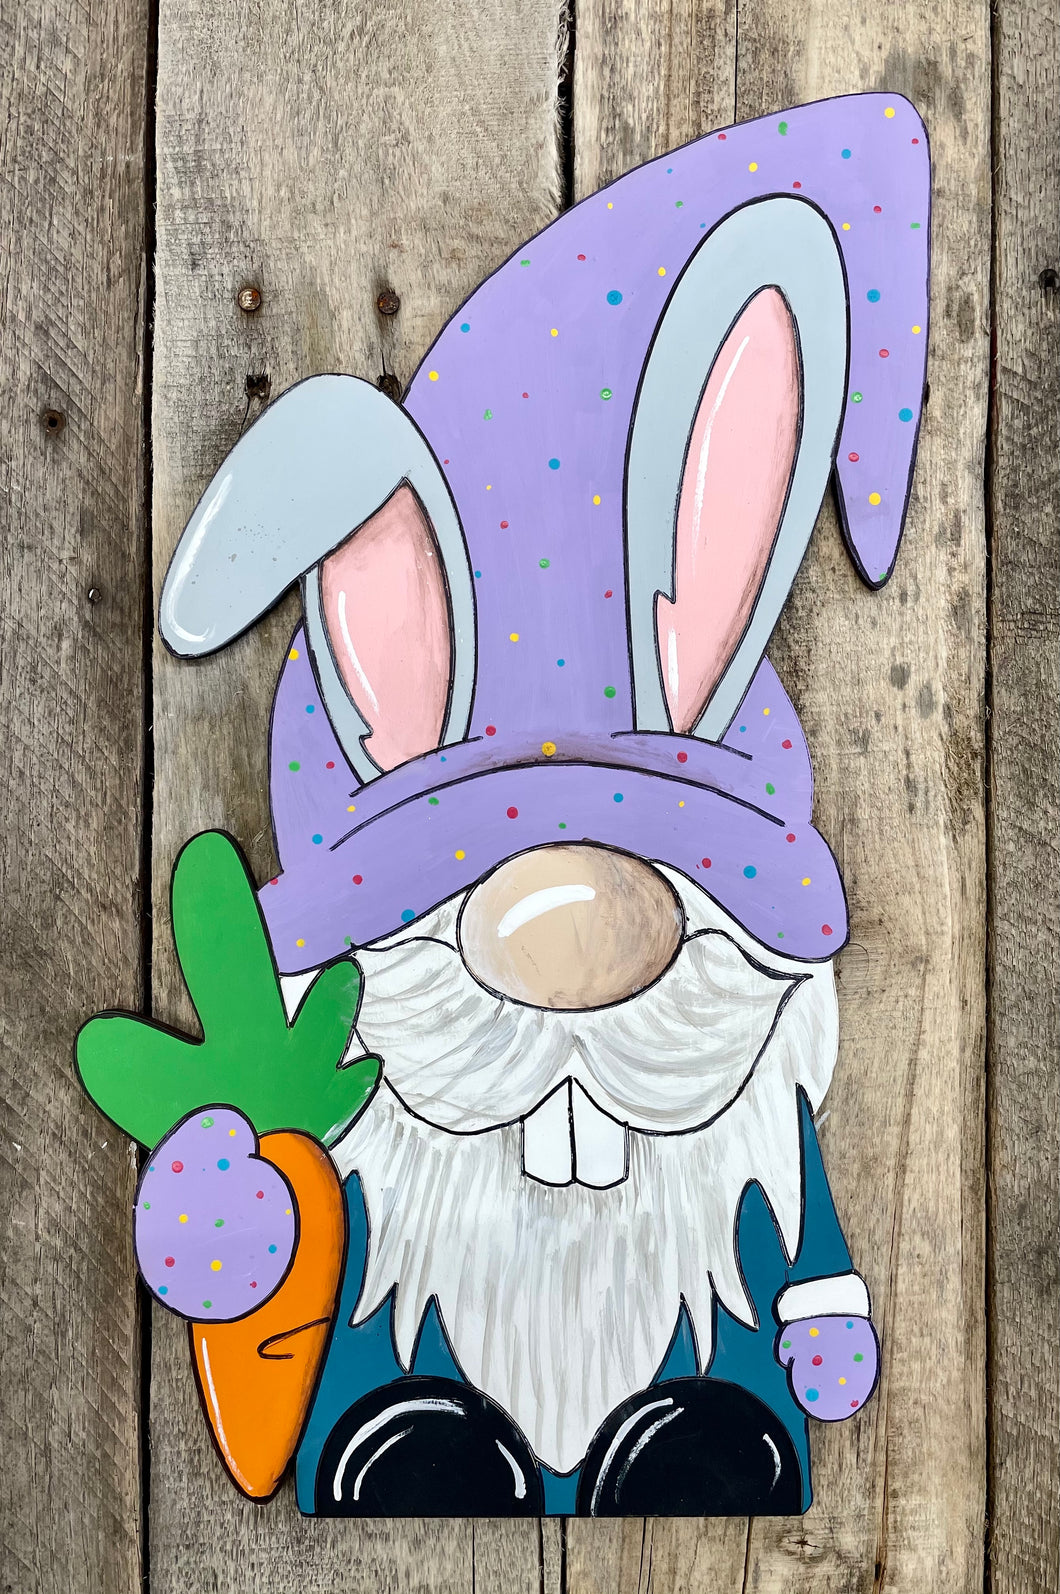 Let's Paint an Easter Gnome! - Tuesday, March 16, 6:30 - 8:30PM - $35